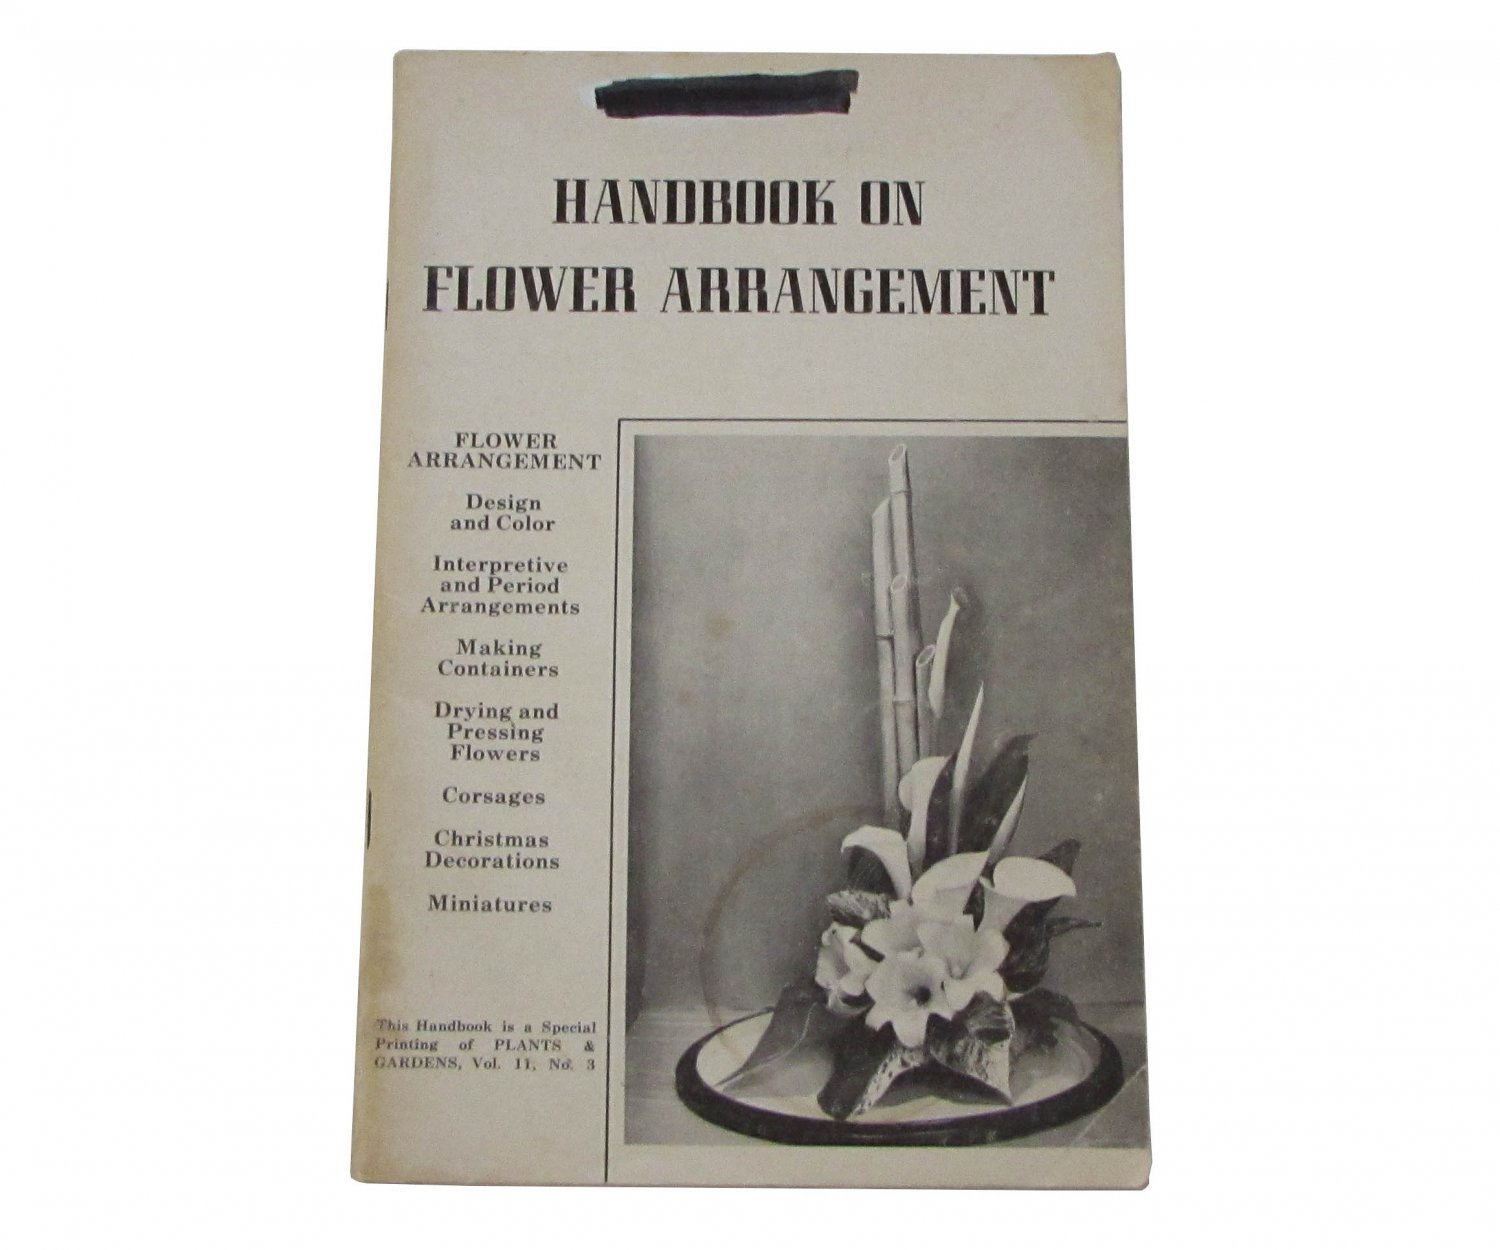 Handbook on Flower Arrangement-Plants & Gardens Vol. II, No. 3 by P. K. (Peter K) Nelson